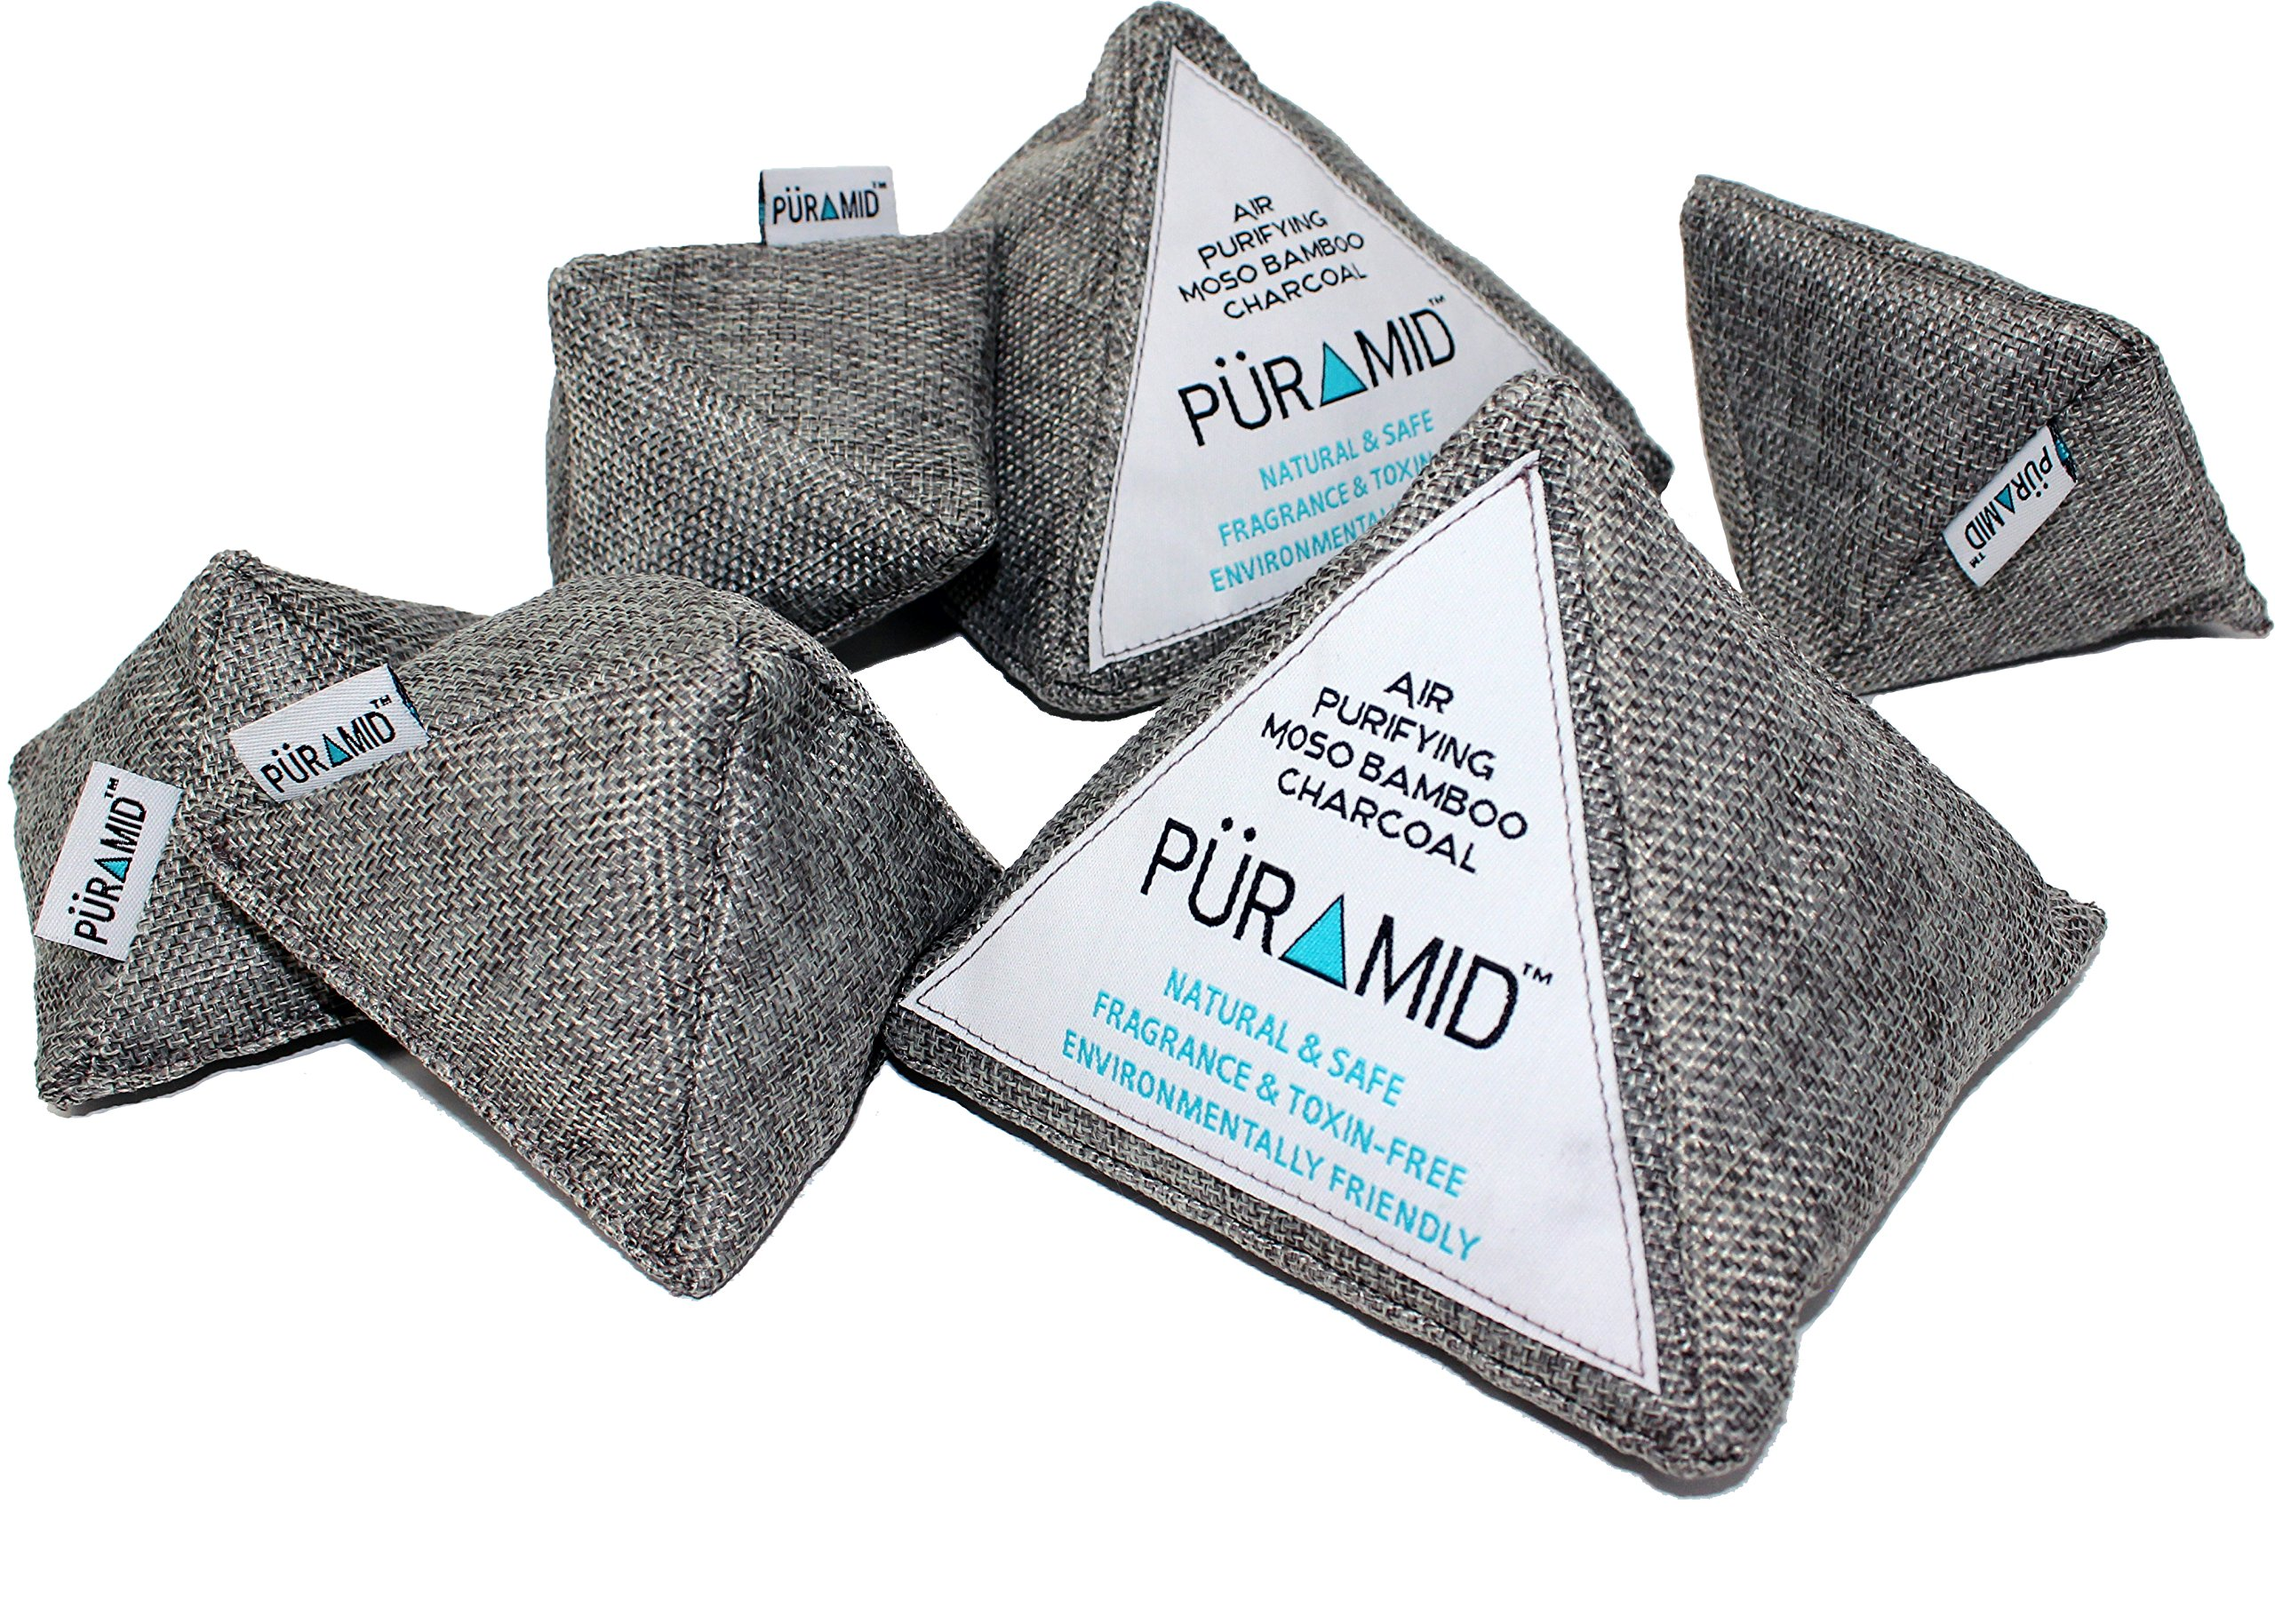 PÜRAMID Bamboo Charcoal Air Freshener Deodorizer Purifying Decor Bags - 100% Natural Safe & Chemical Free Odor Moisture Absorber Eliminator 6 Pack for Home, Shoes, Car, Closet, RV, Pets and Litter Box